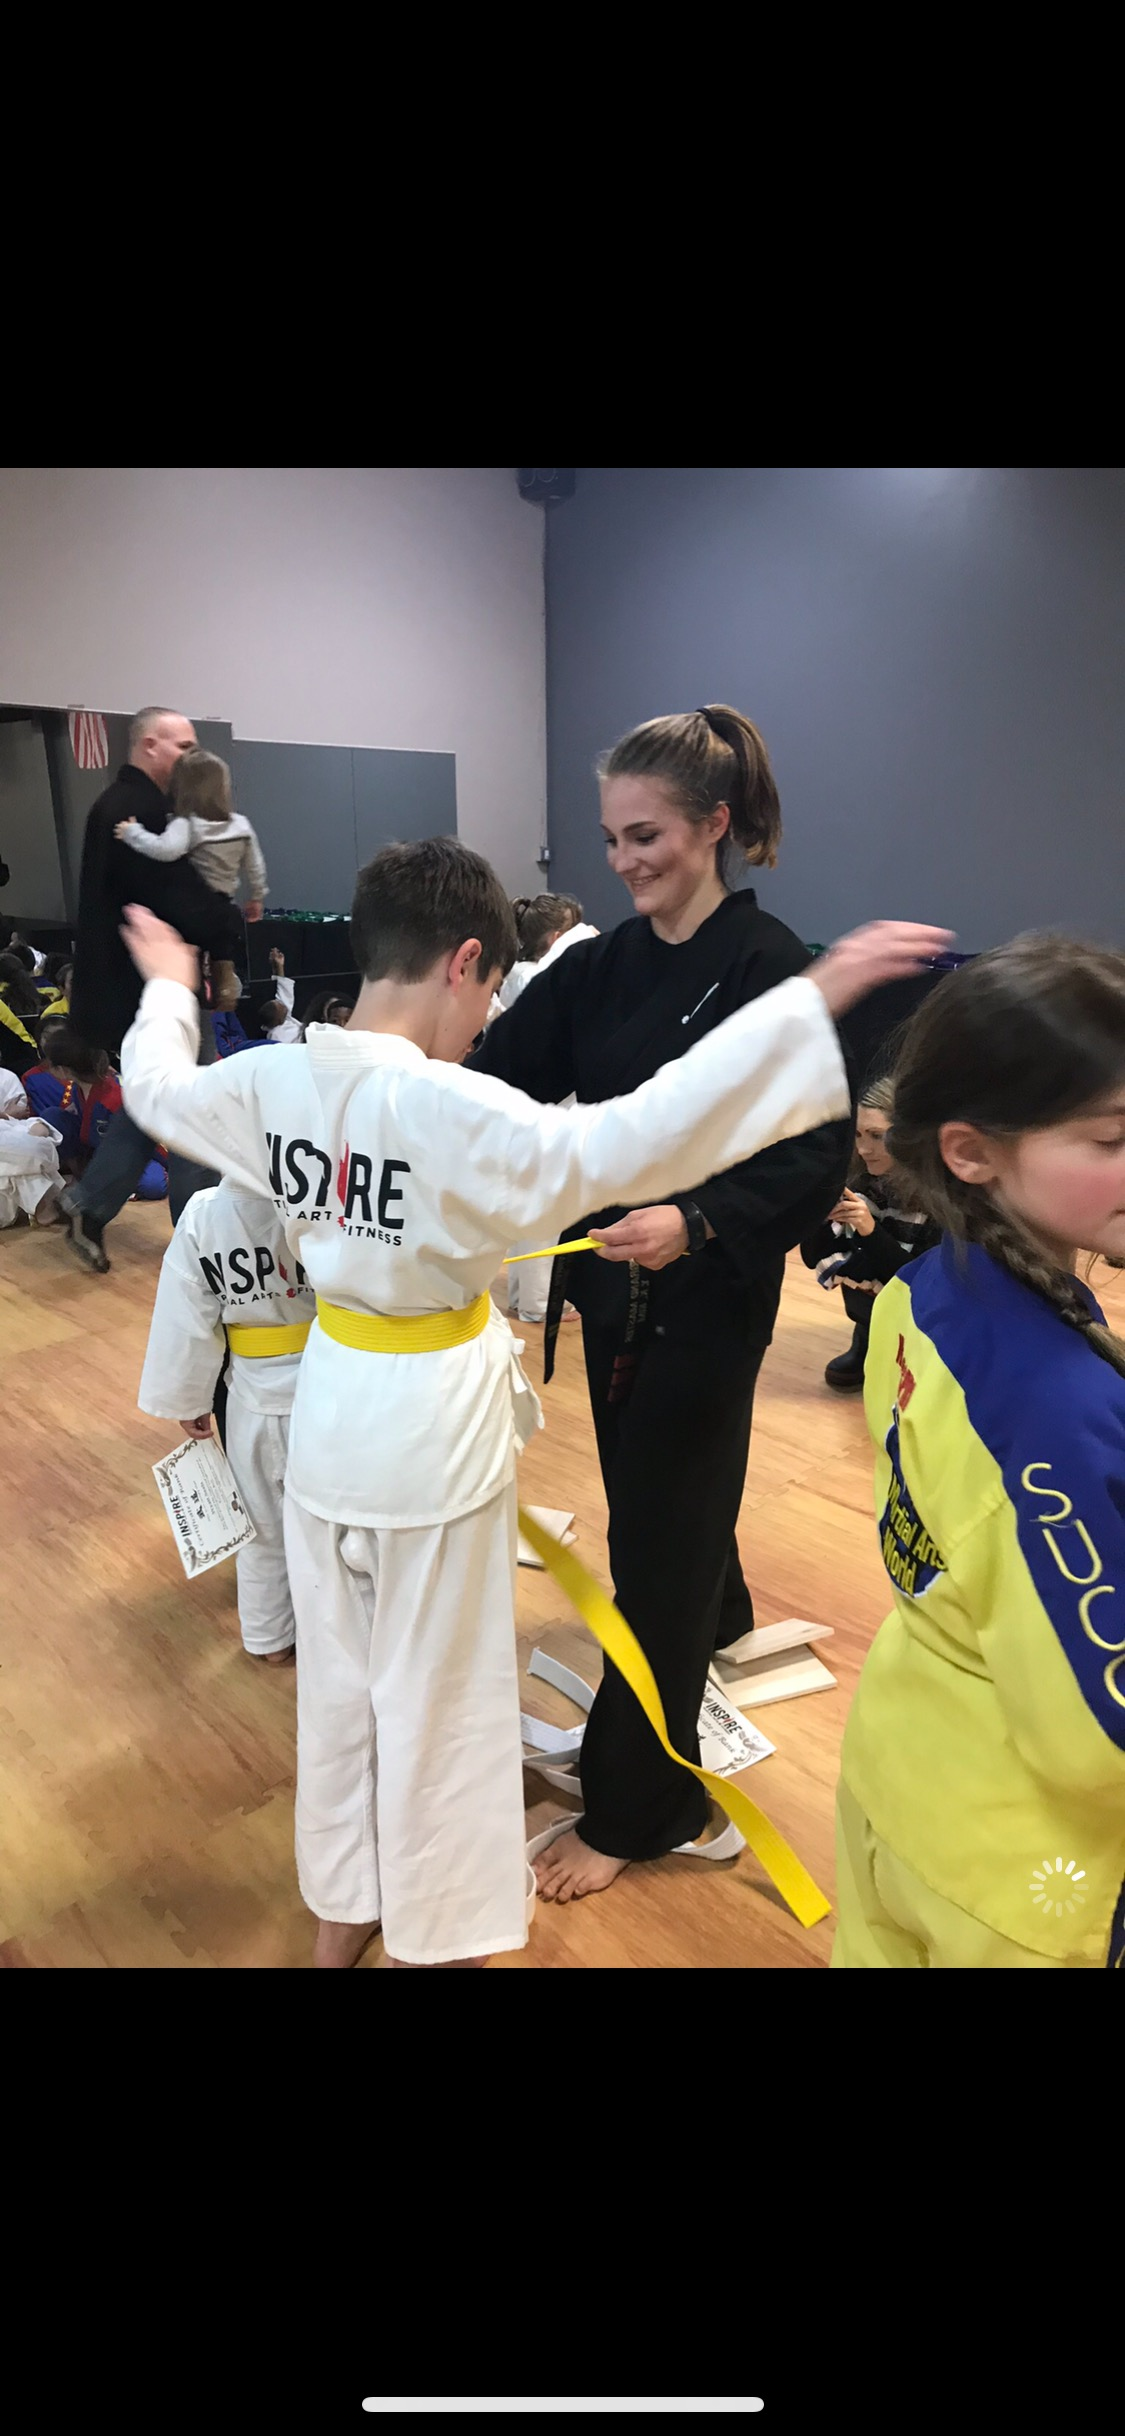 Instructor putting on yellow belt on boy